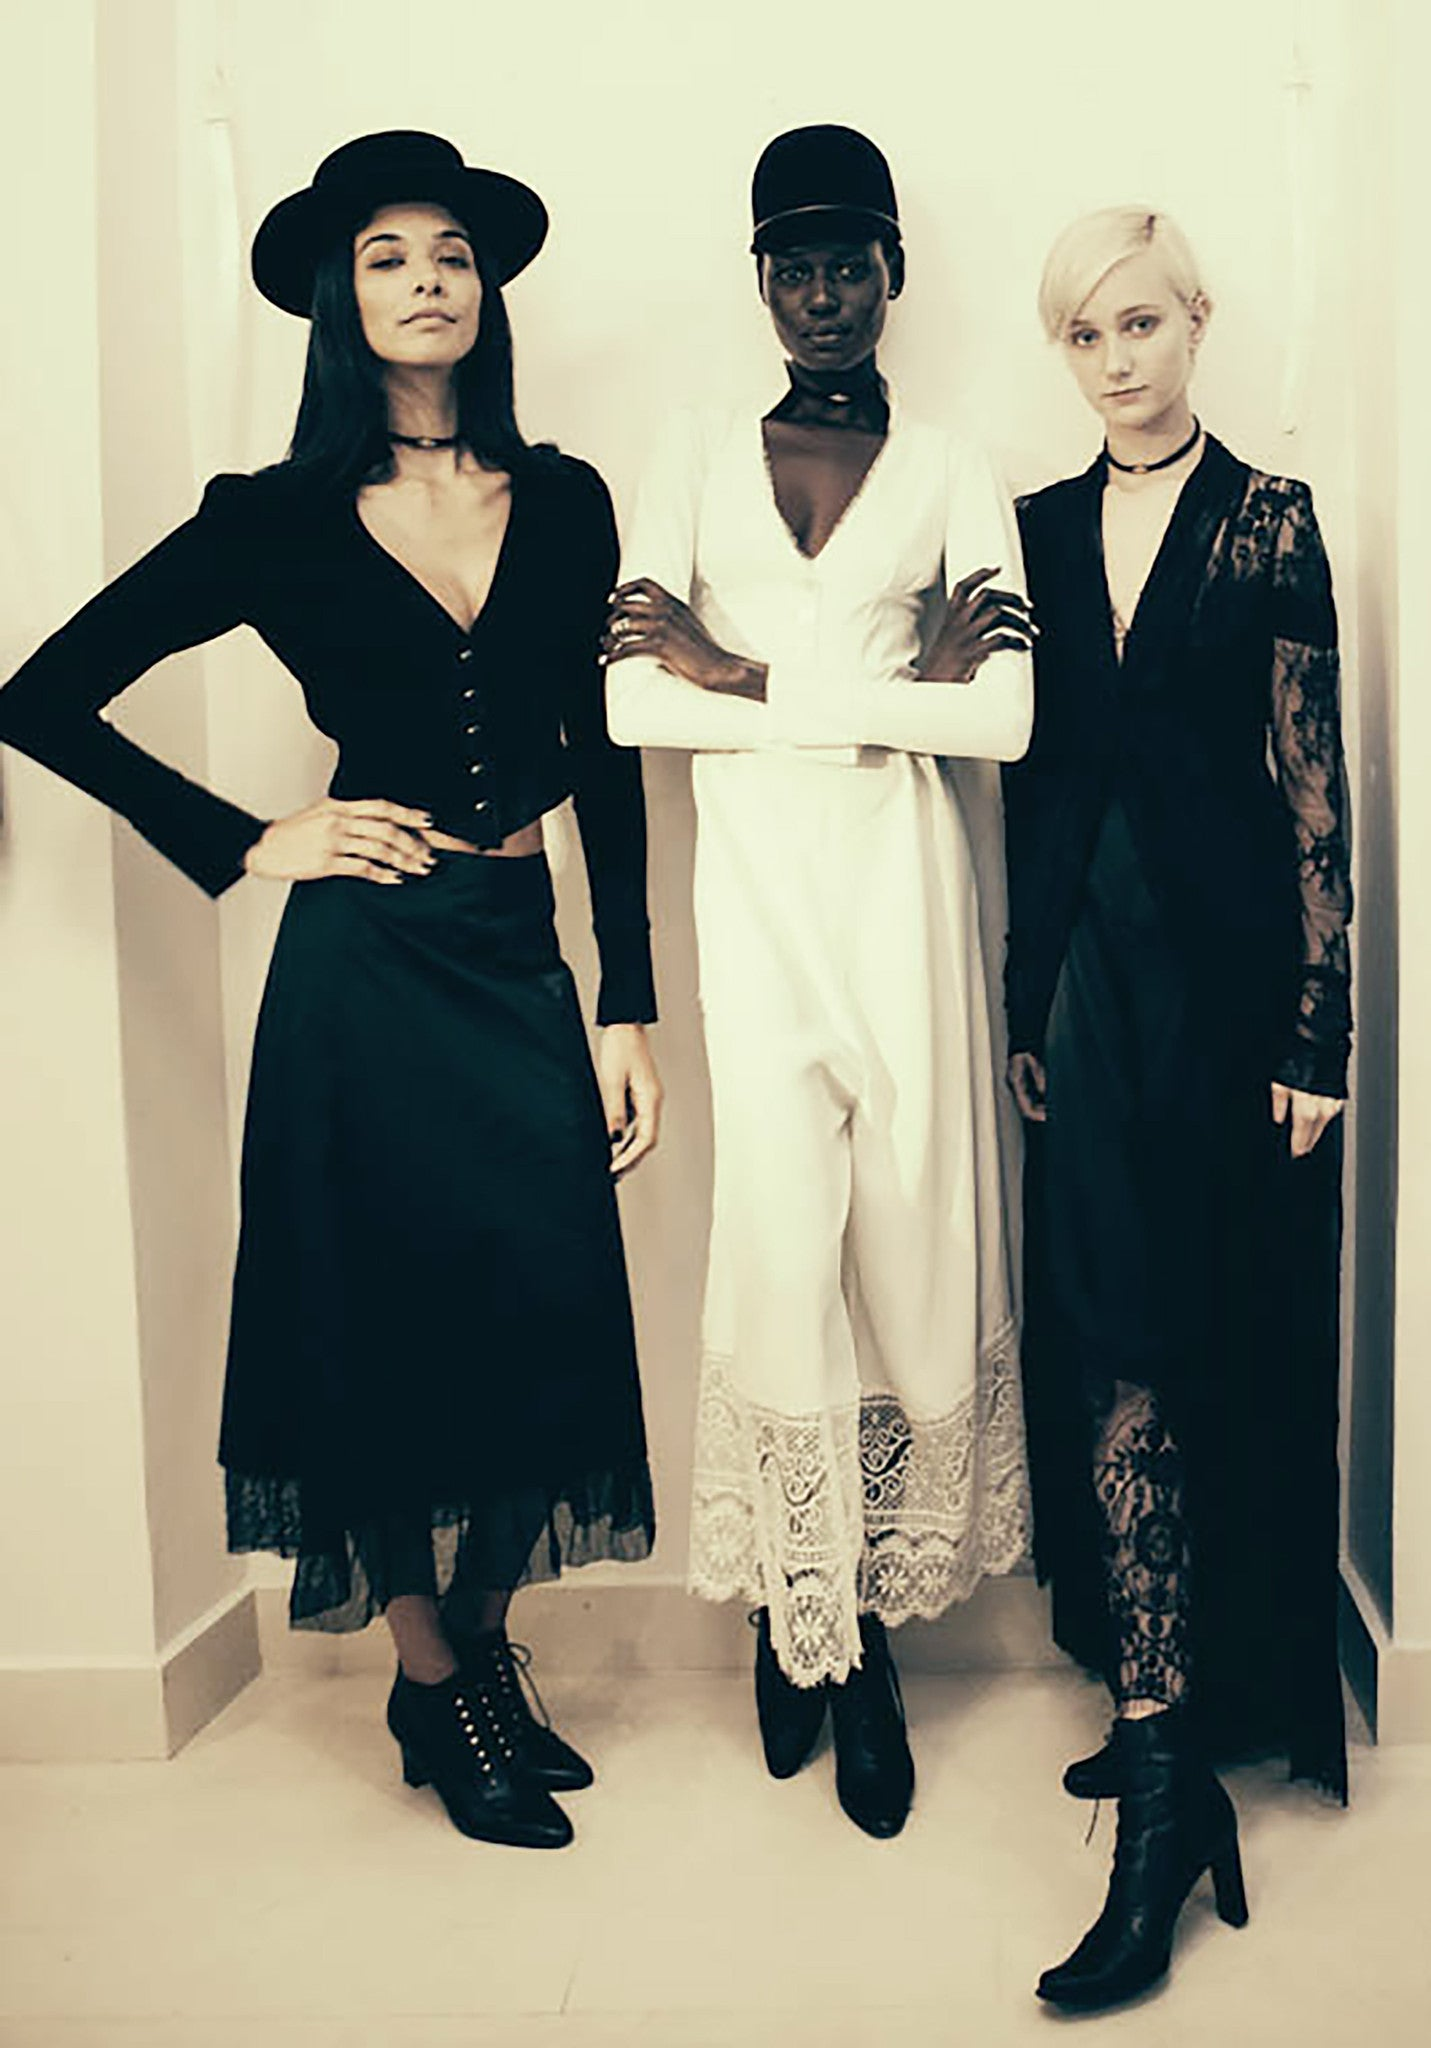 Ajak Deng Heidy de la Rosa Juliette Fazekas IMG Model French Lace Empire Waist Coat Sheer Wendy Nichol Clothing Fashion Designer Runway Show Handmade in NYC SS15  Black Sheer Lace